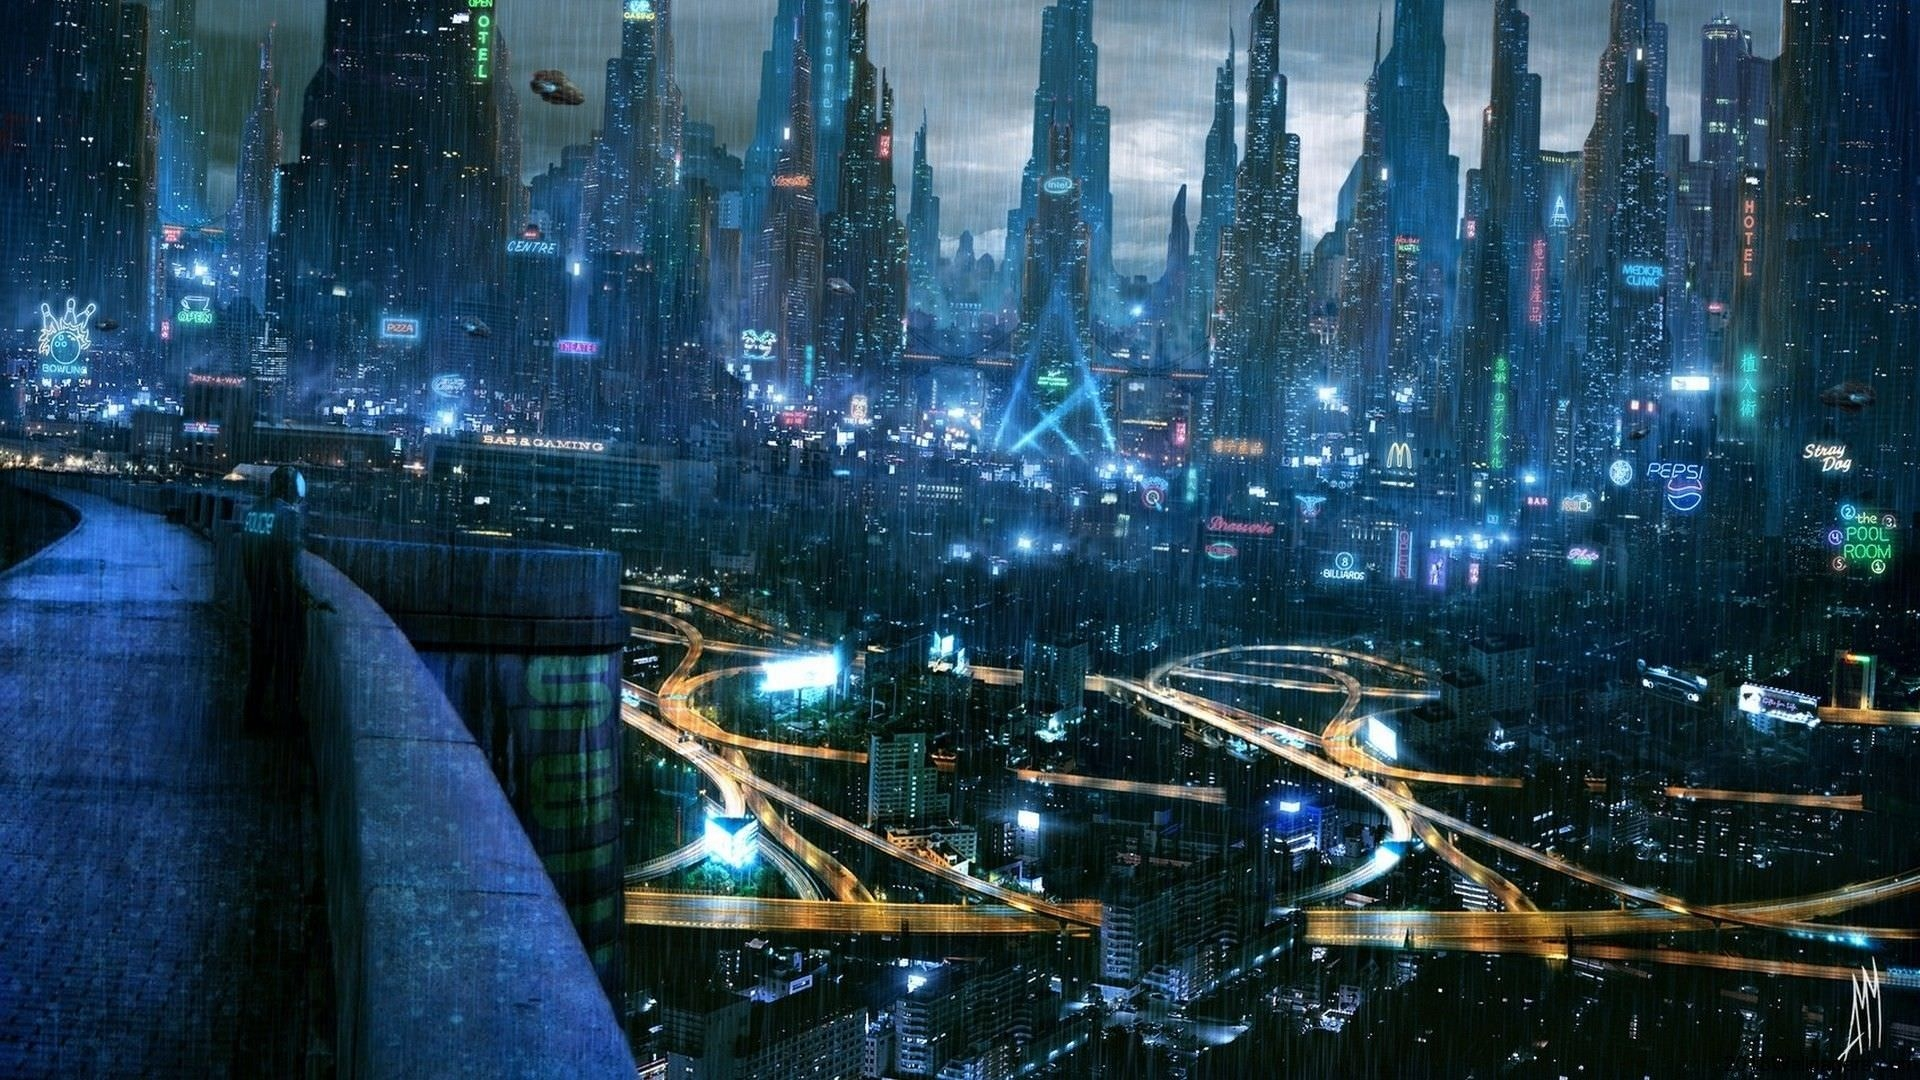 Future City HD Wallpaper